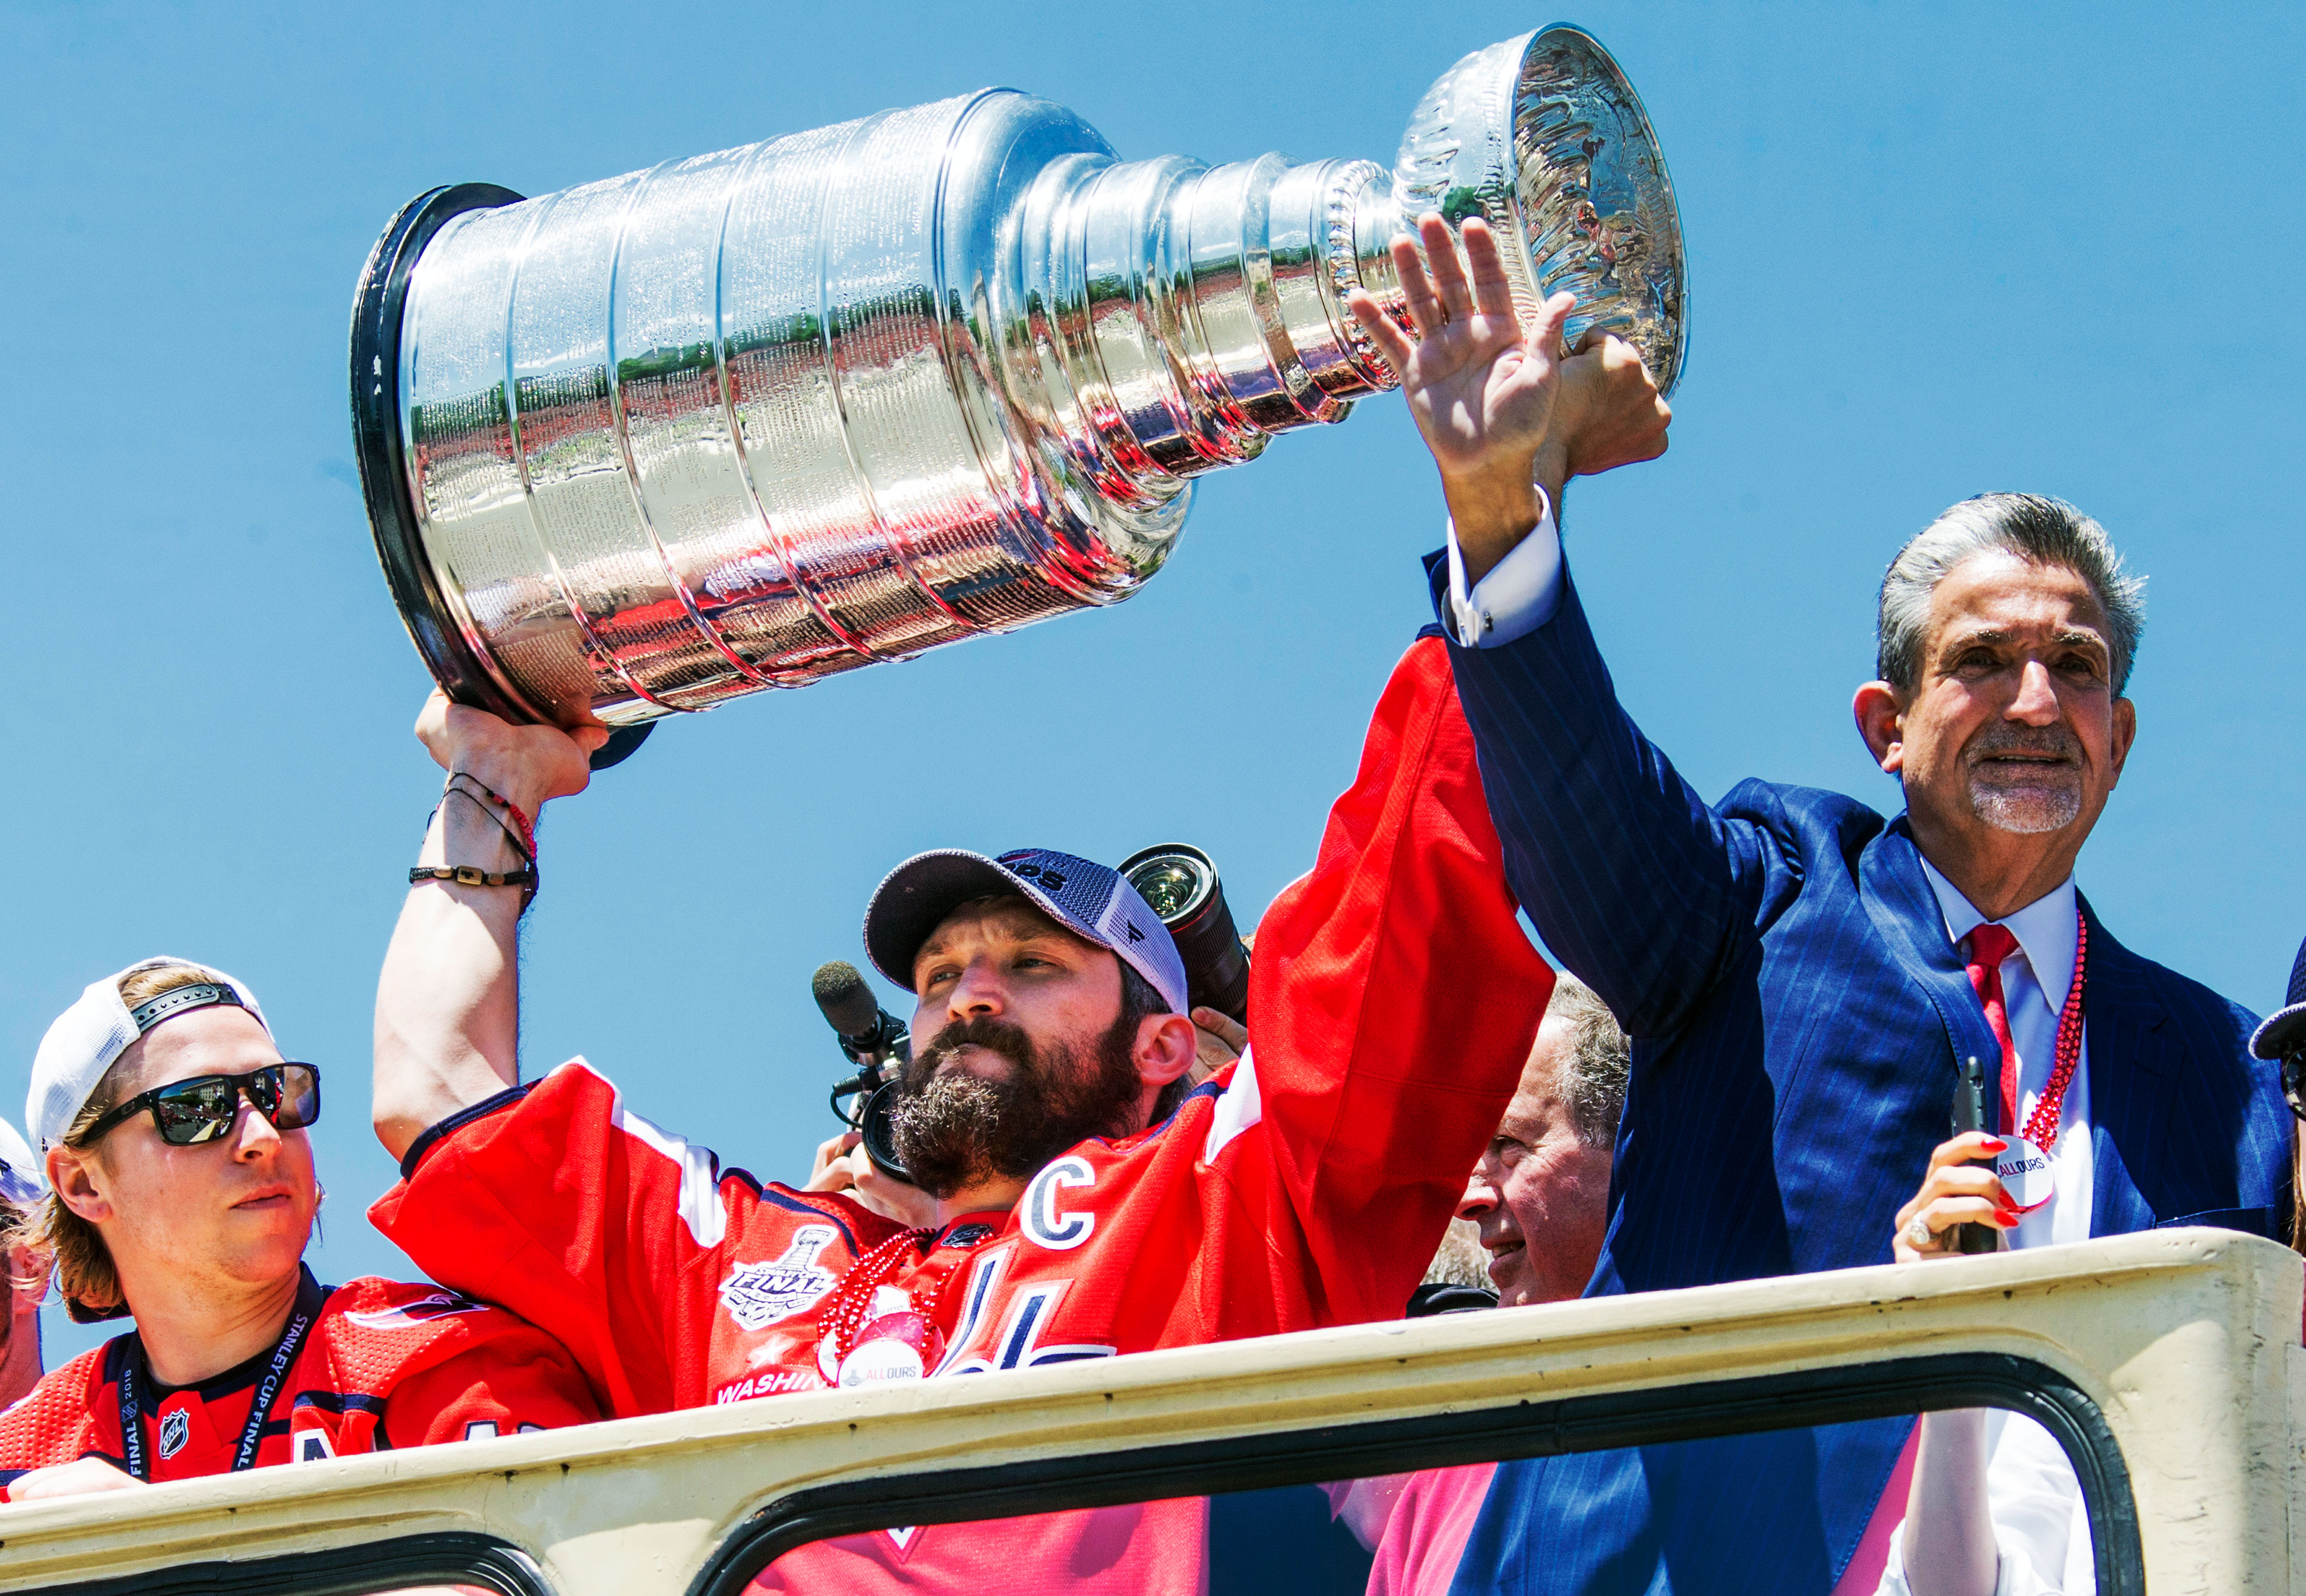 2a91ed16f82 Washington Capitals left wing Alex Ovechkin (center) holding the Stanley Cup  and owner Ted Leonsis (right) during the Washington Capitals  Stanley Cup  ...